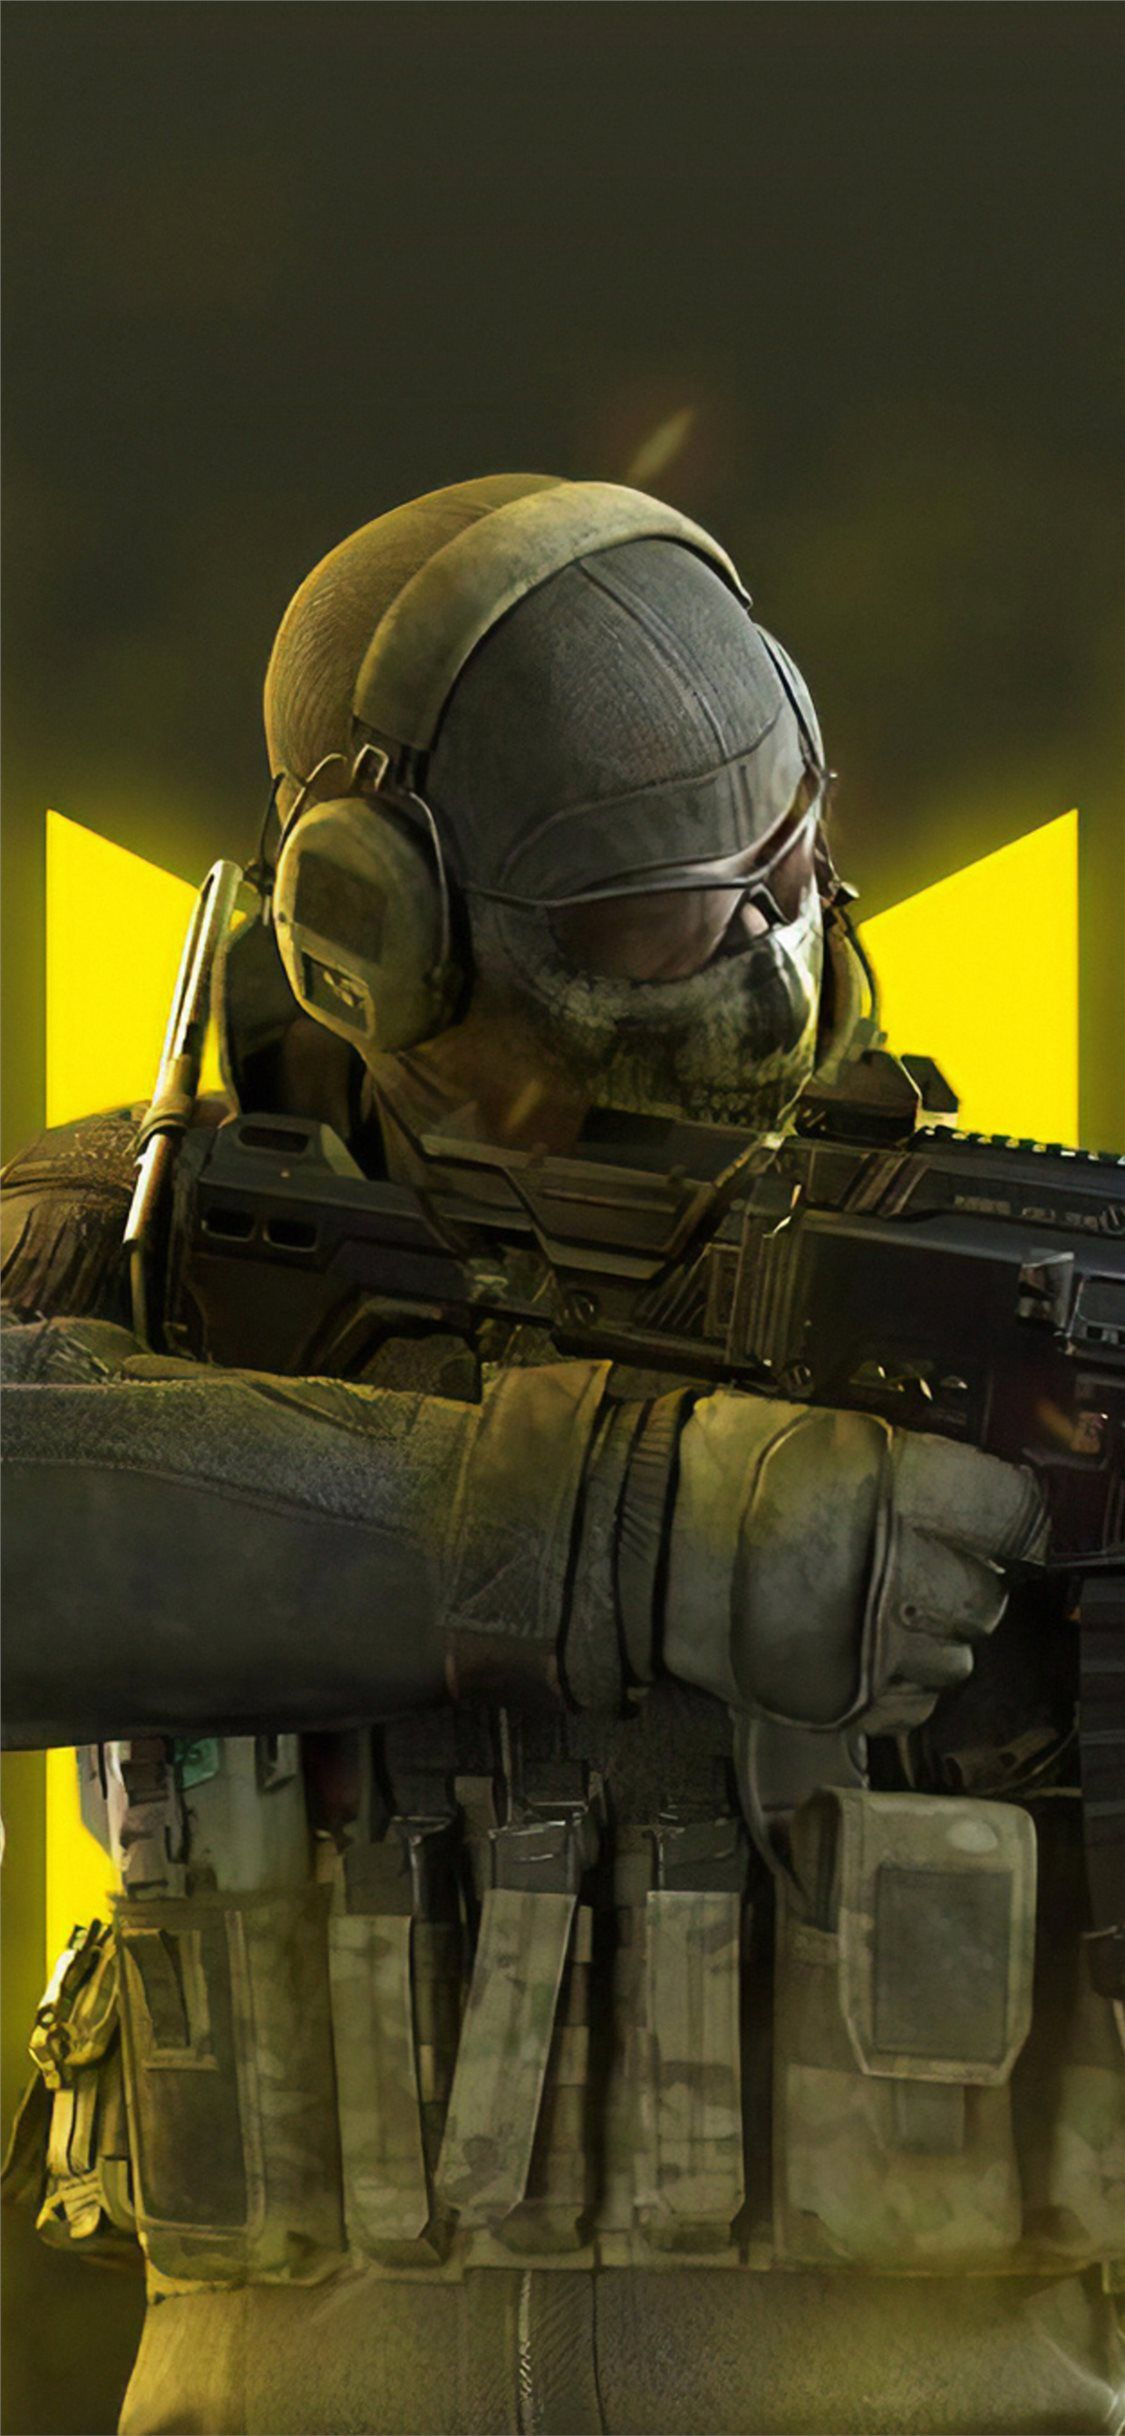 call of duty mobile 4k 2019 wallpaper